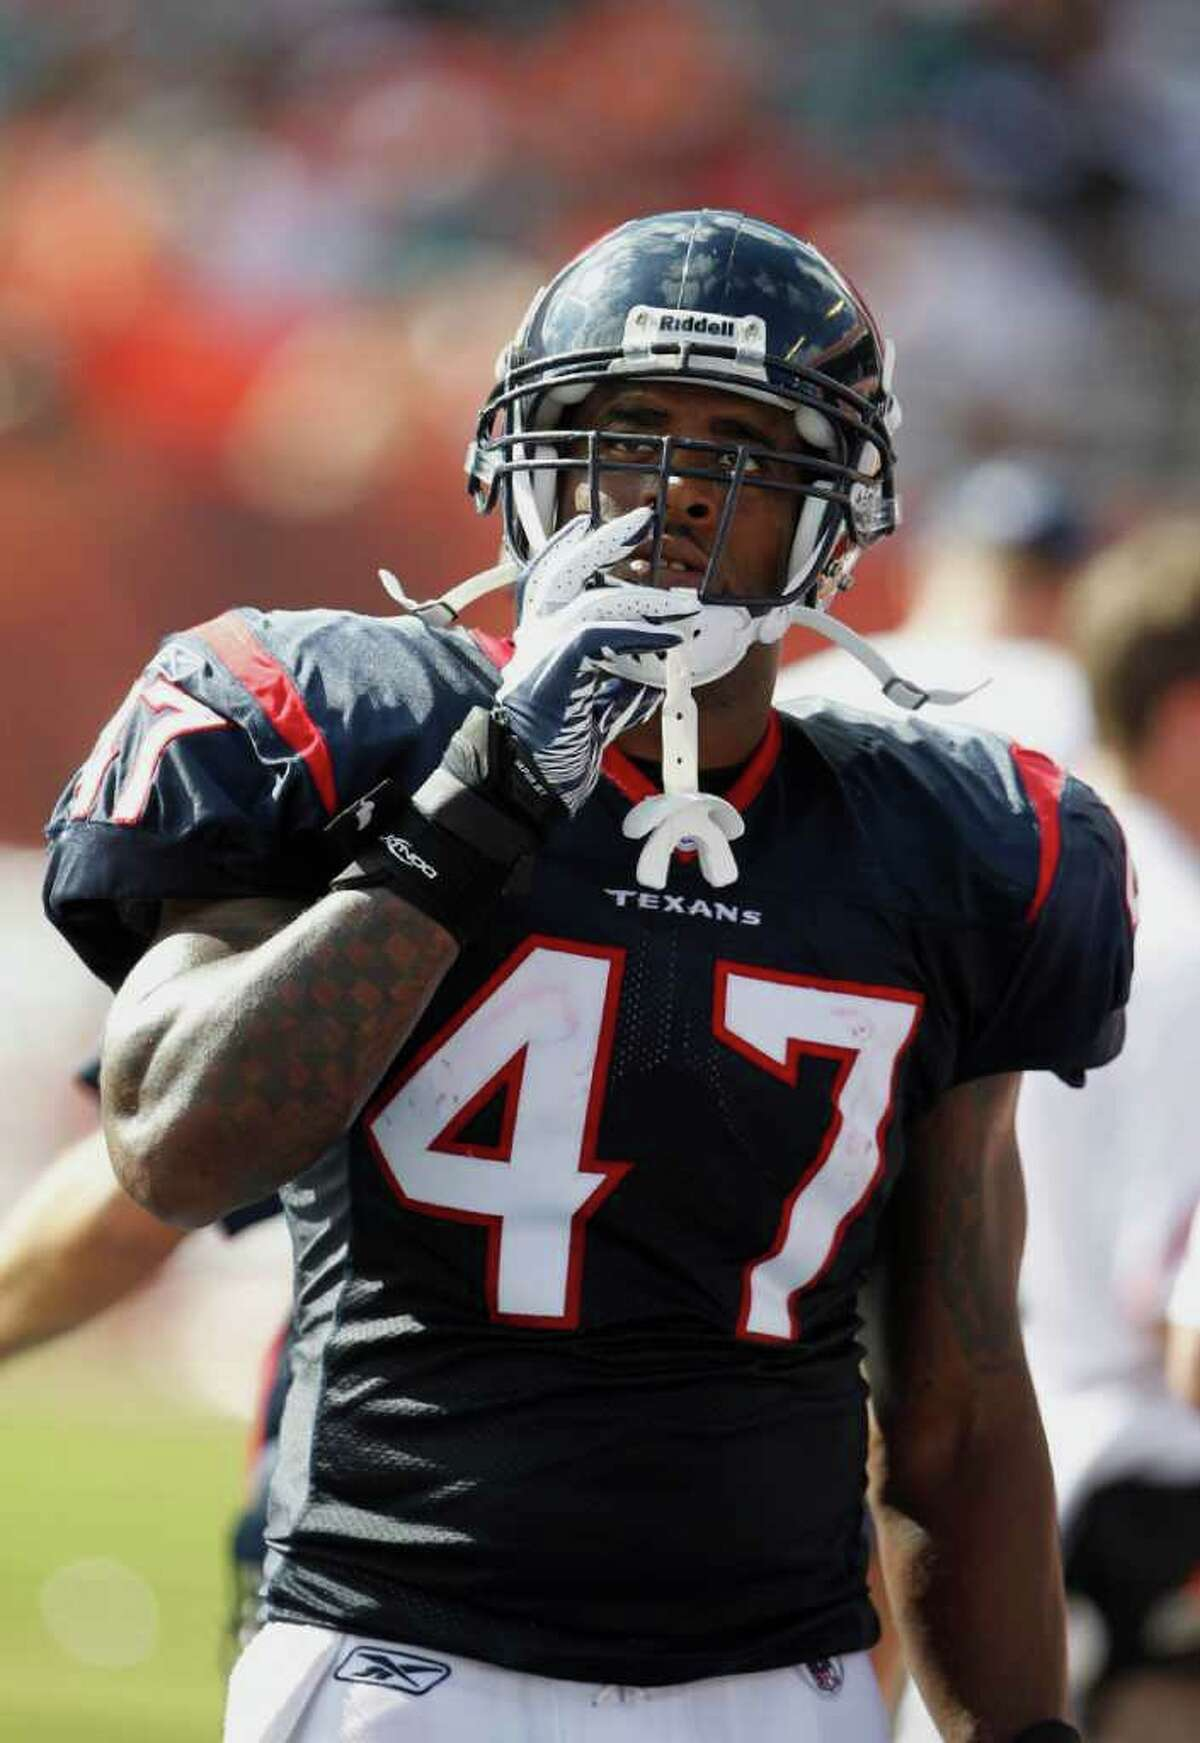 Lawrence Vickers was effective as a lead blocker for Arian Foster and Ben Tate in his lone season with the Texans.